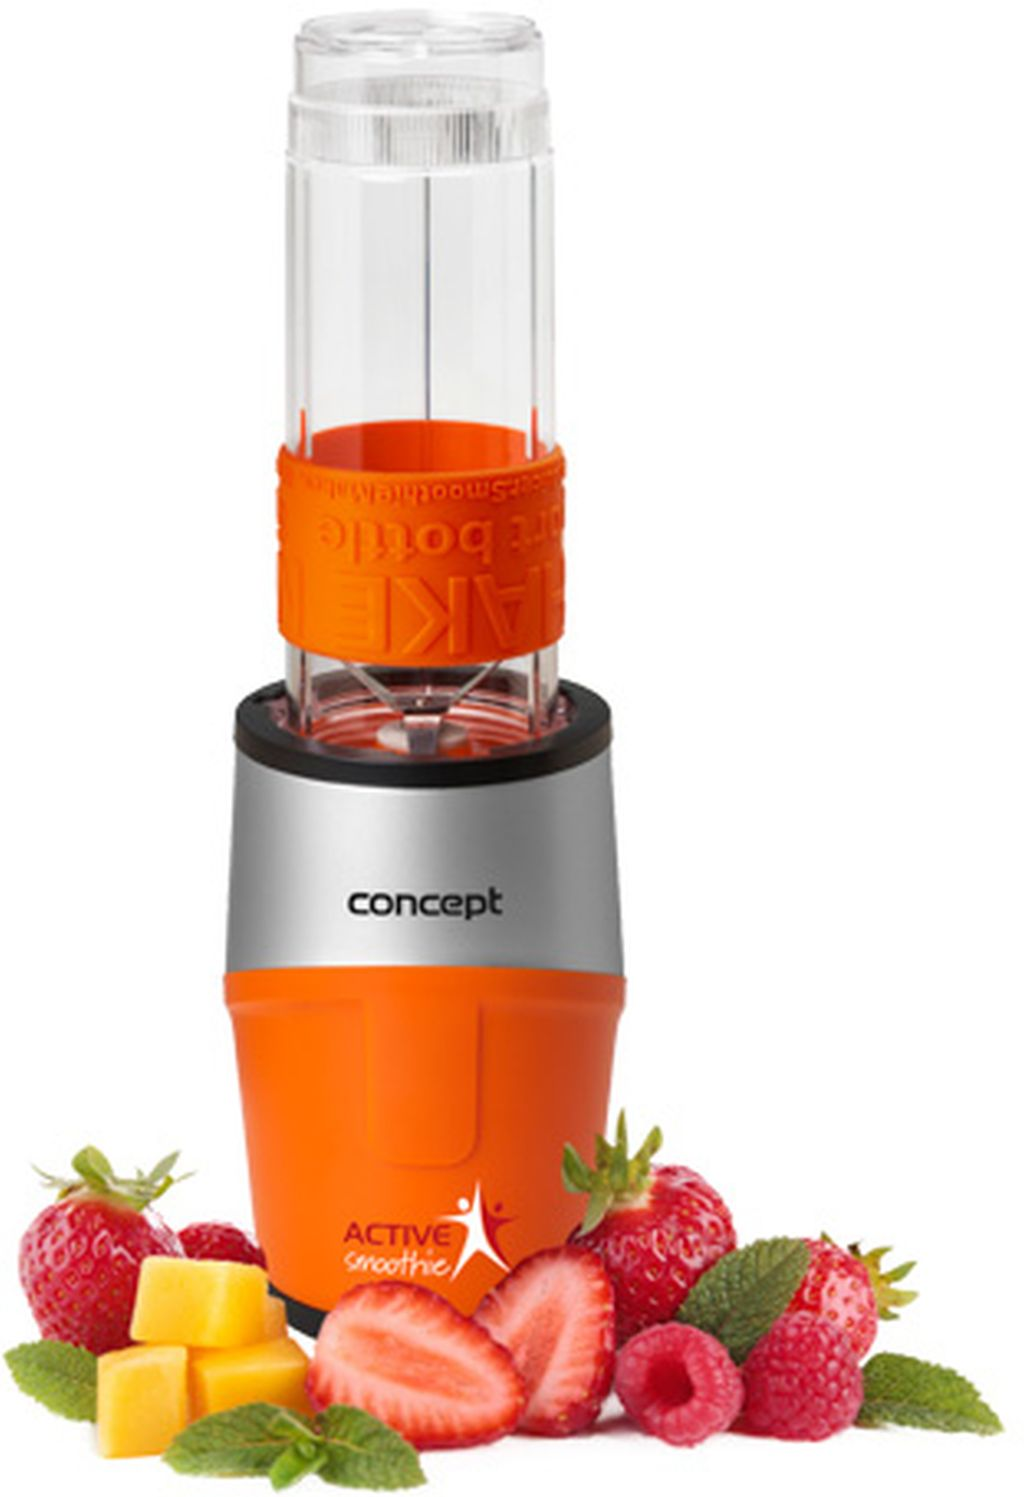 CONCEPT SM-3381 Smoothie maker, Active smoothie sm3381